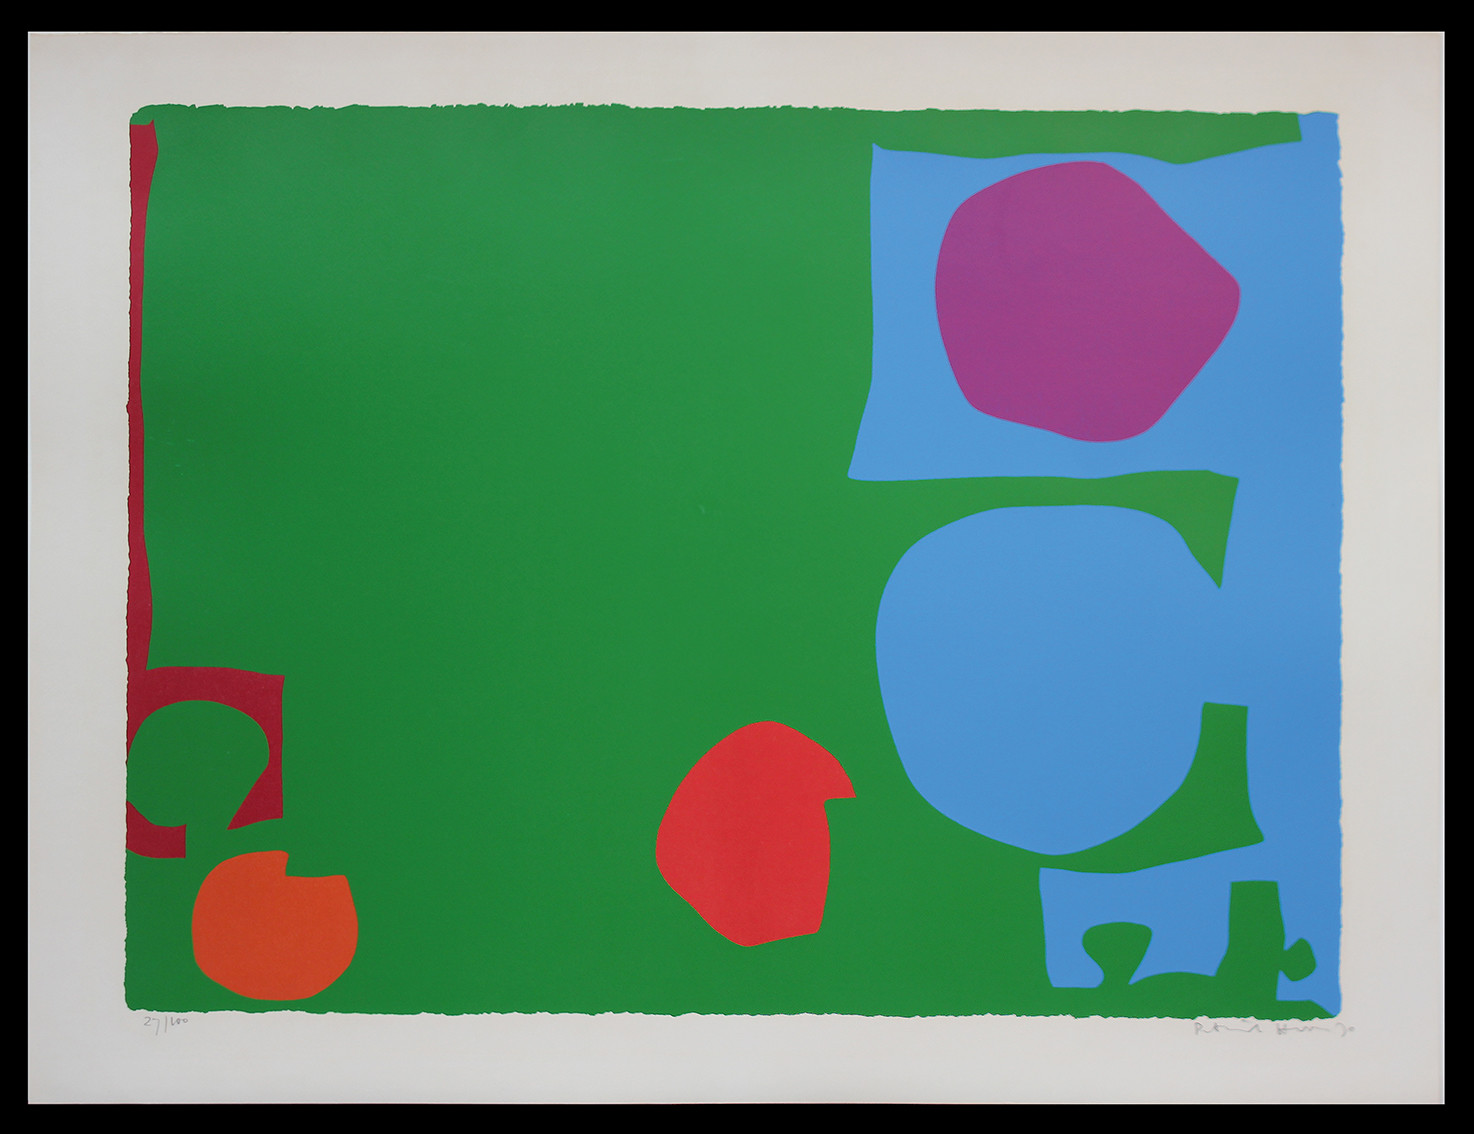 "<span class=""link fancybox-details-link""><a href=""/artists/93-patrick-heron-cbe/works/3807-patrick-heron-cbe-three-reds-in-green-and-magenta-in-blue-1970/"">View Detail Page</a></span><div class=""artist""><strong>Patrick Heron CBE</strong></div> 1920 – 1999 <div class=""title""><em>Three Reds in Green and Magenta in Blue: April 1970</em>, 1970</div> <div class=""signed_and_dated"">signed and dated in pencil</div> <div class=""medium"">silkscreen print in colours on wove paper, with full margins</div> <div class=""dimensions"">image size: 59.7 x 78.4 <br /> sheet: 70 x 91 cm (27 1/2 x 35 7/8 in.)</div> <div class=""edition_details"">Edition 27 of 100</div><div class=""copyright_line"">© The Estate of Patrick Heron</div>"